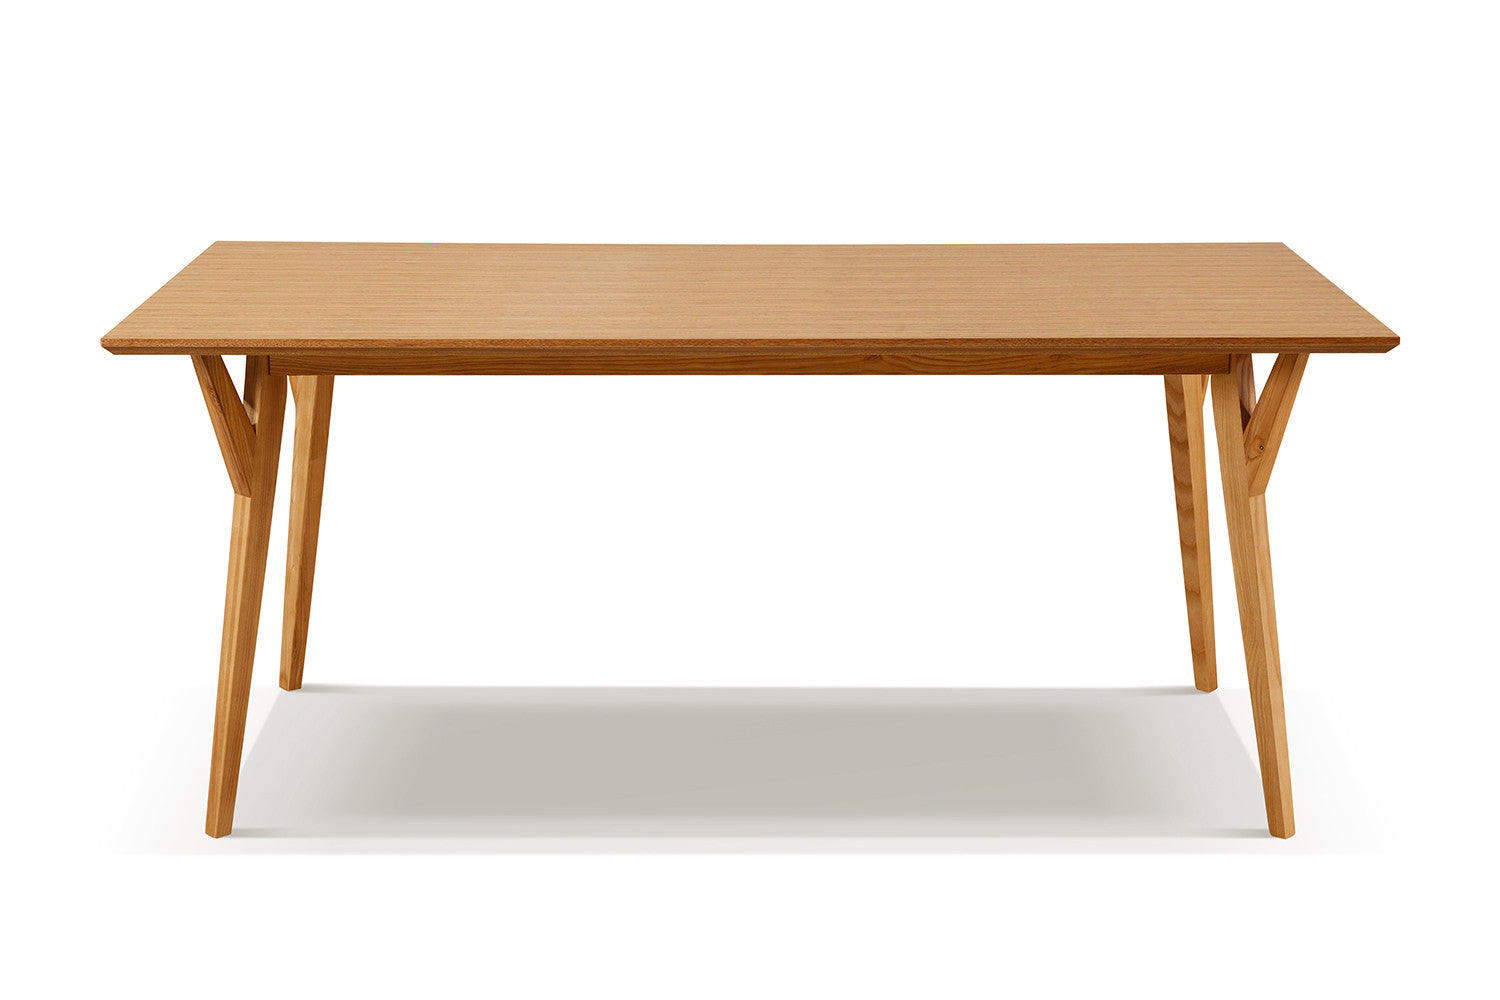 Table salle a manger scandinave for Table scandinave bois